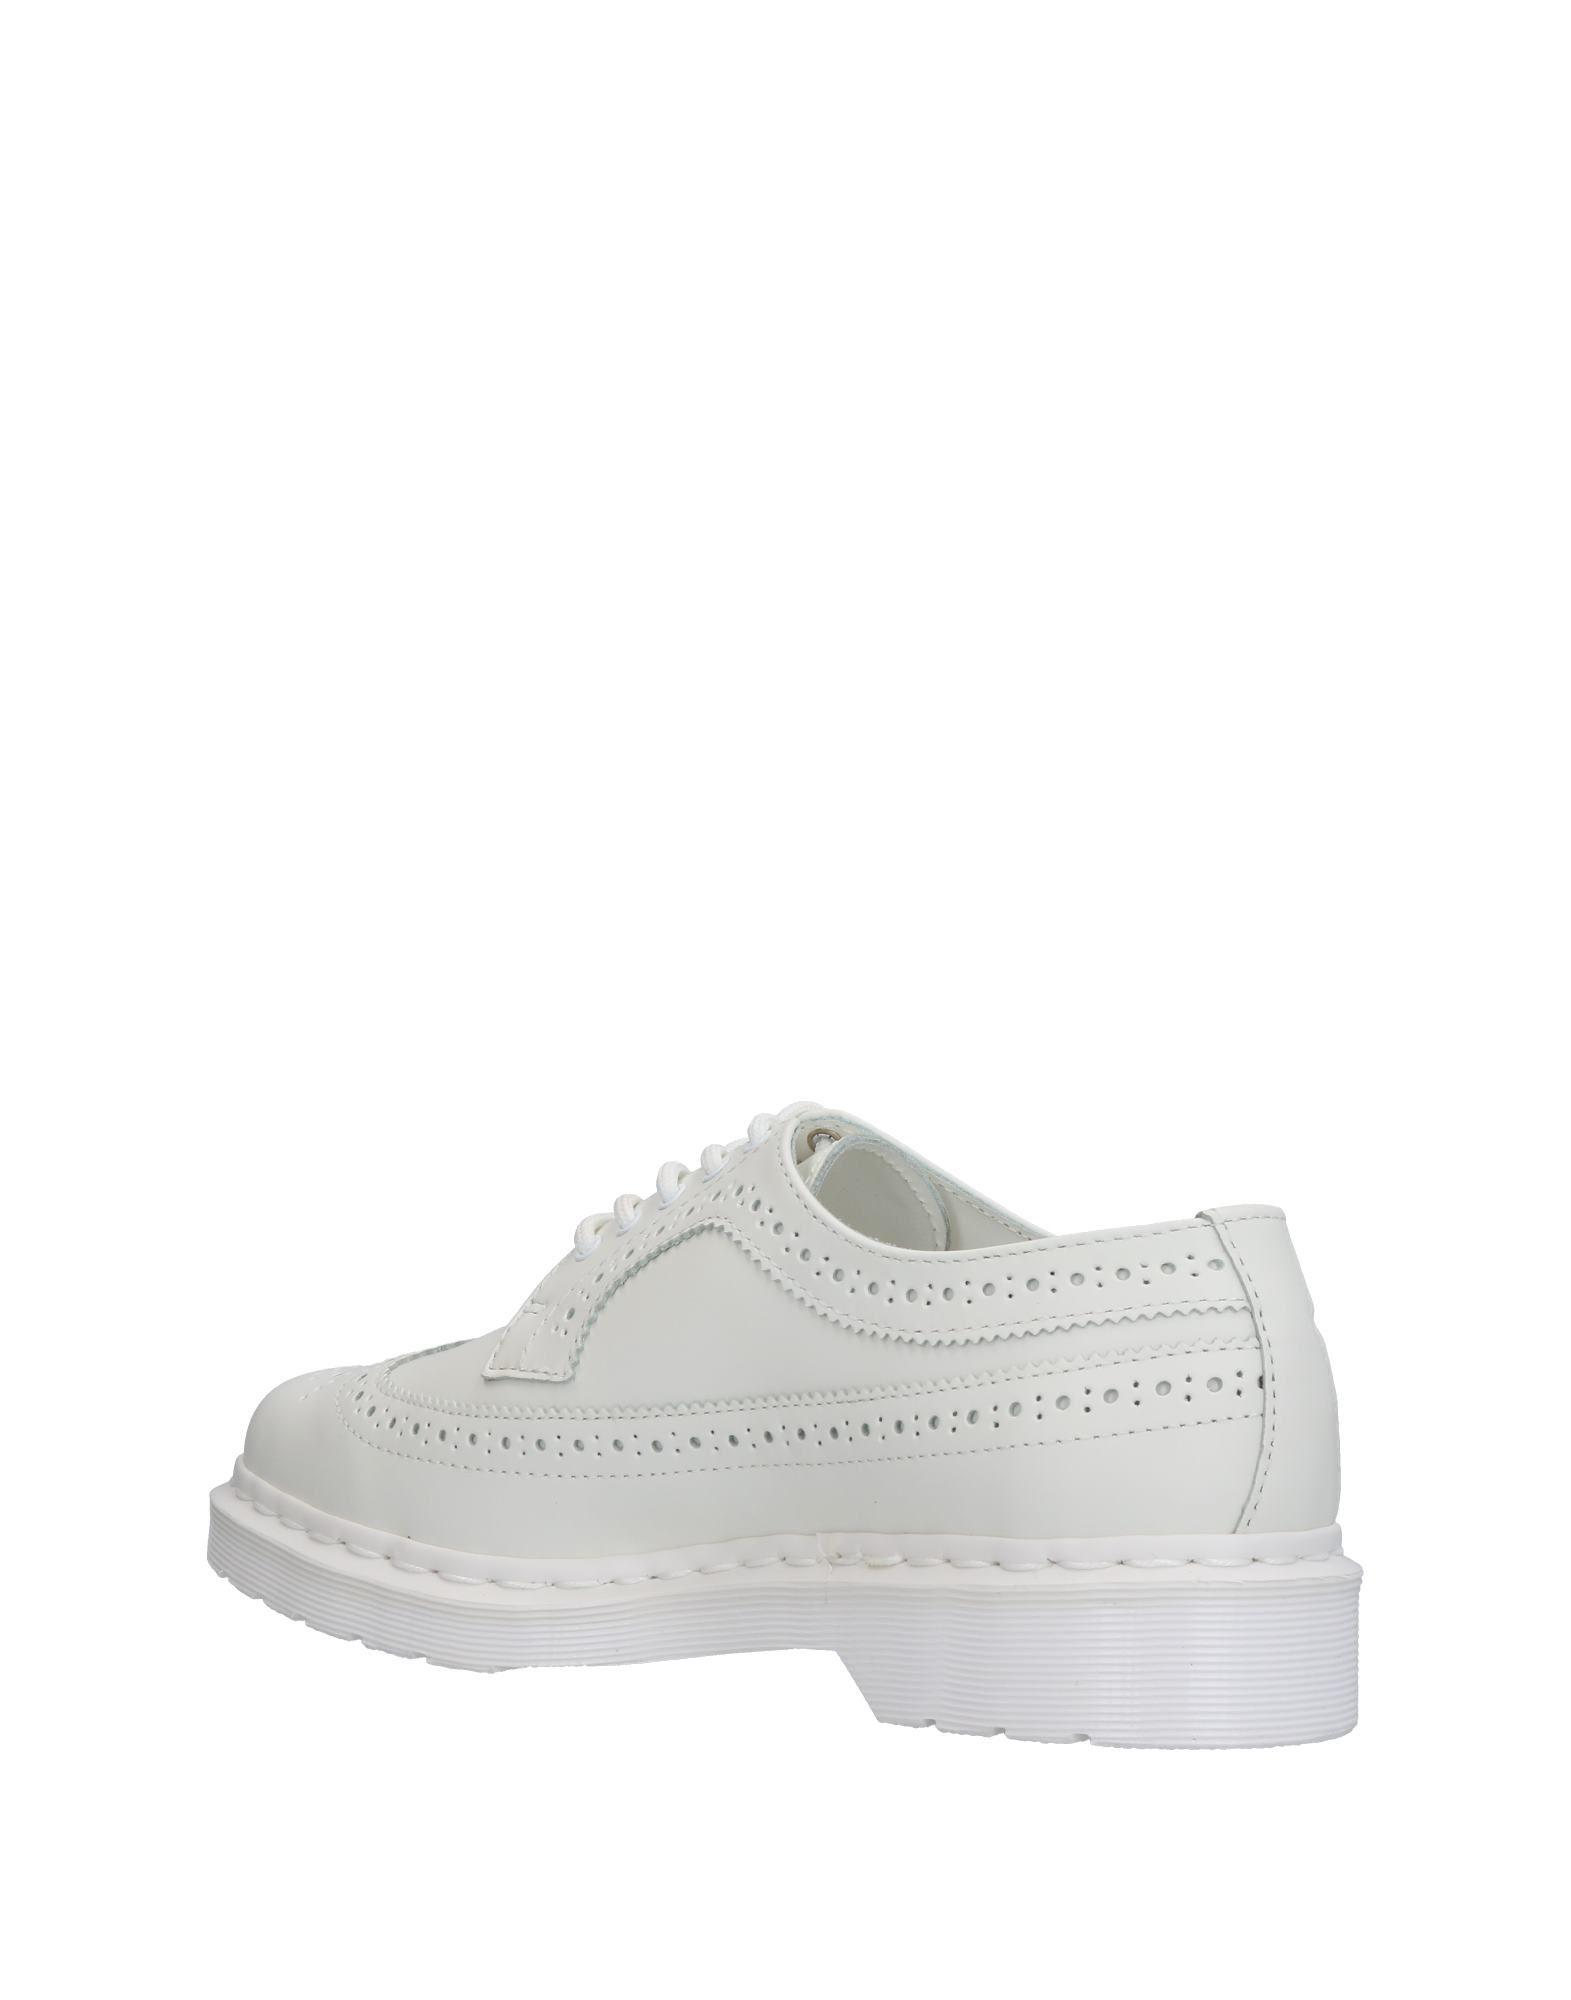 Dr. Martens Leather Lace-up Shoe in White for Men